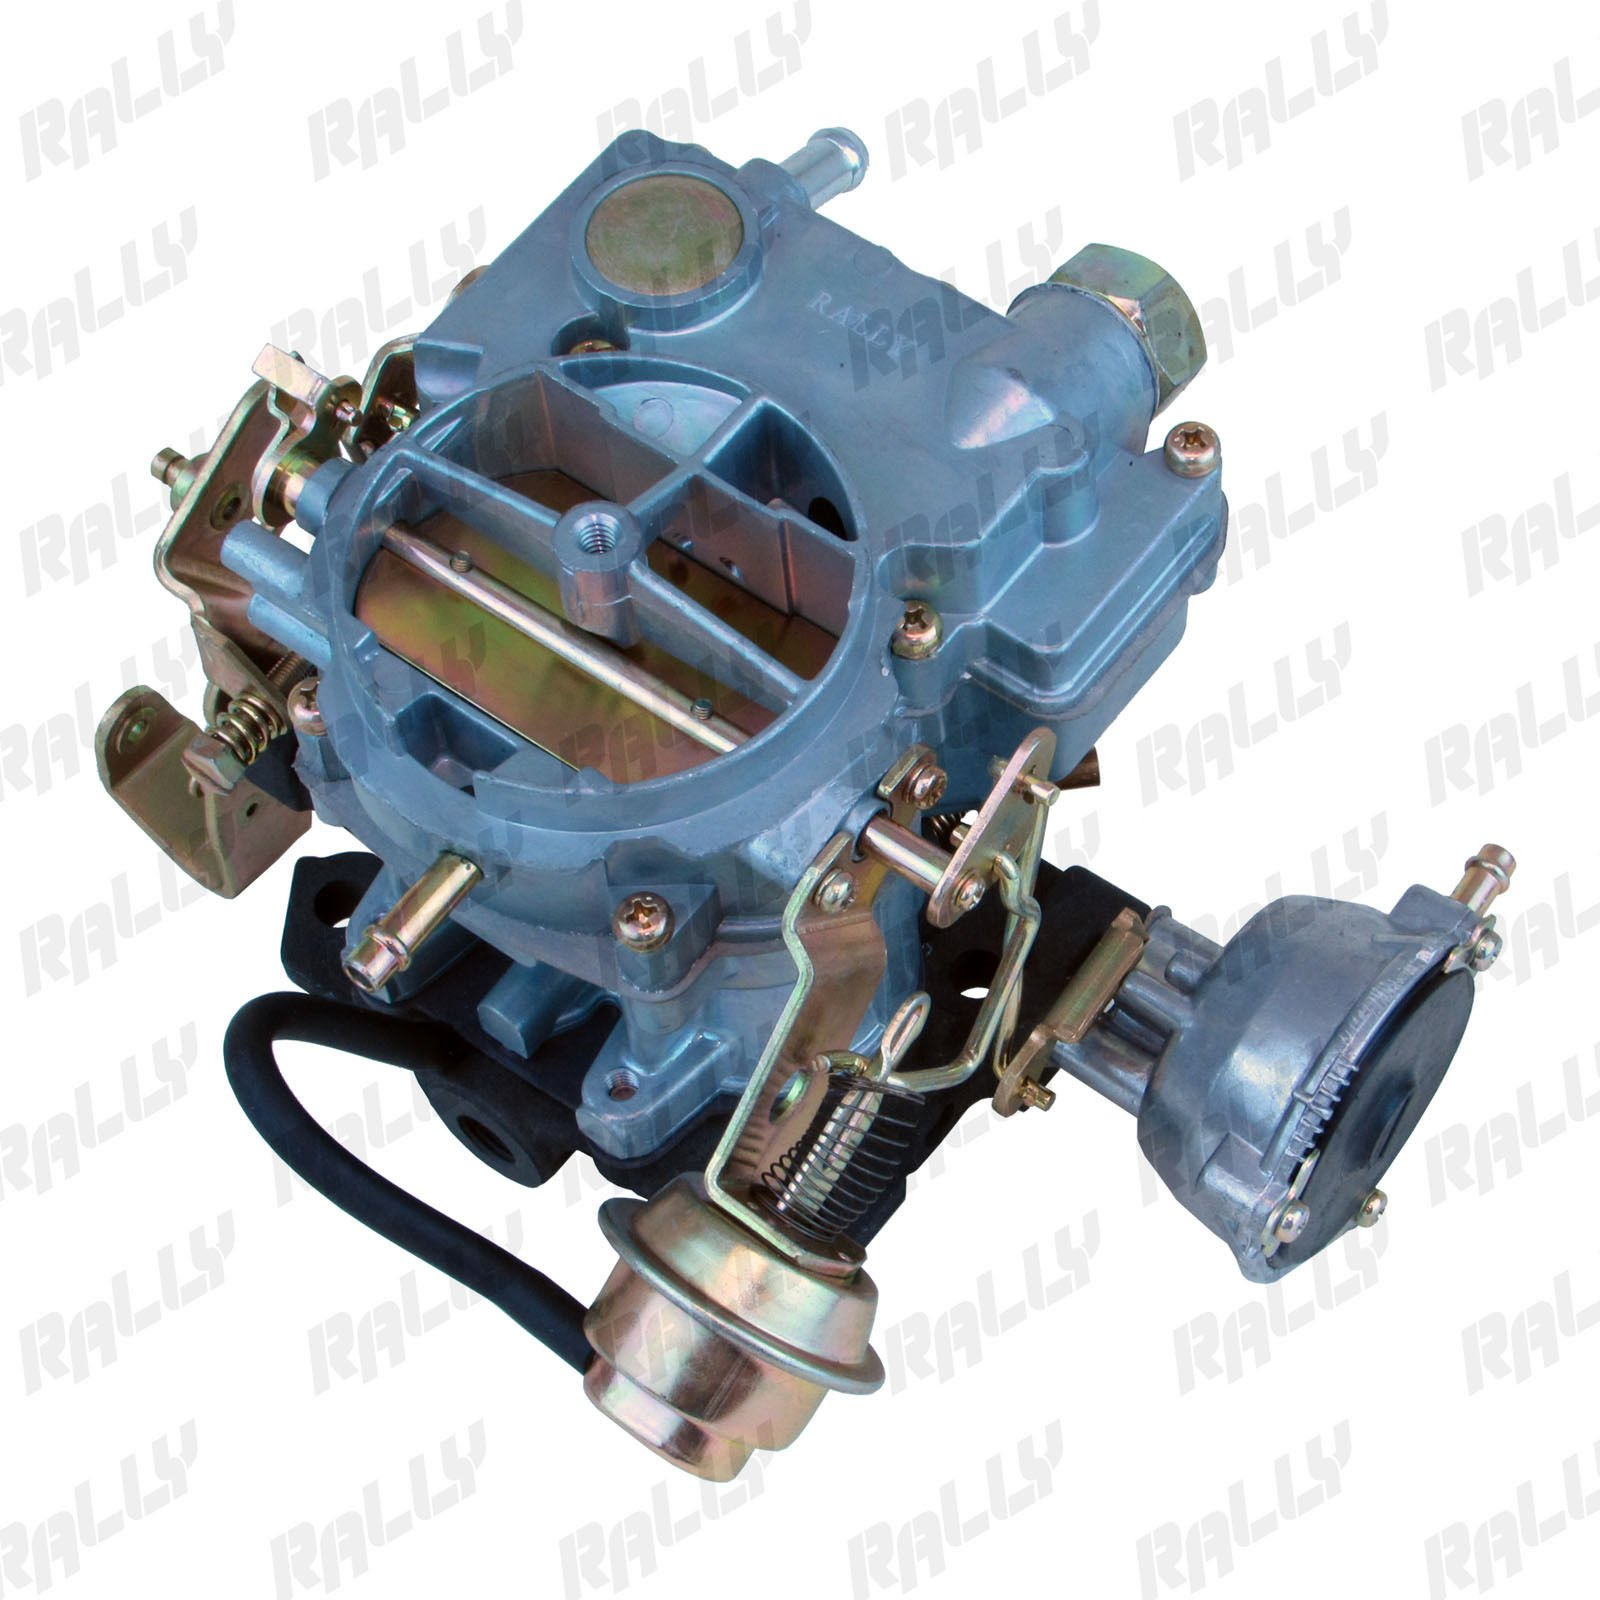 155 NEW CARBURETOR TYPE ROCHESTER CHEVY 2GC 2 BARREL 307 350 400 VENTURI 1.57 JM155